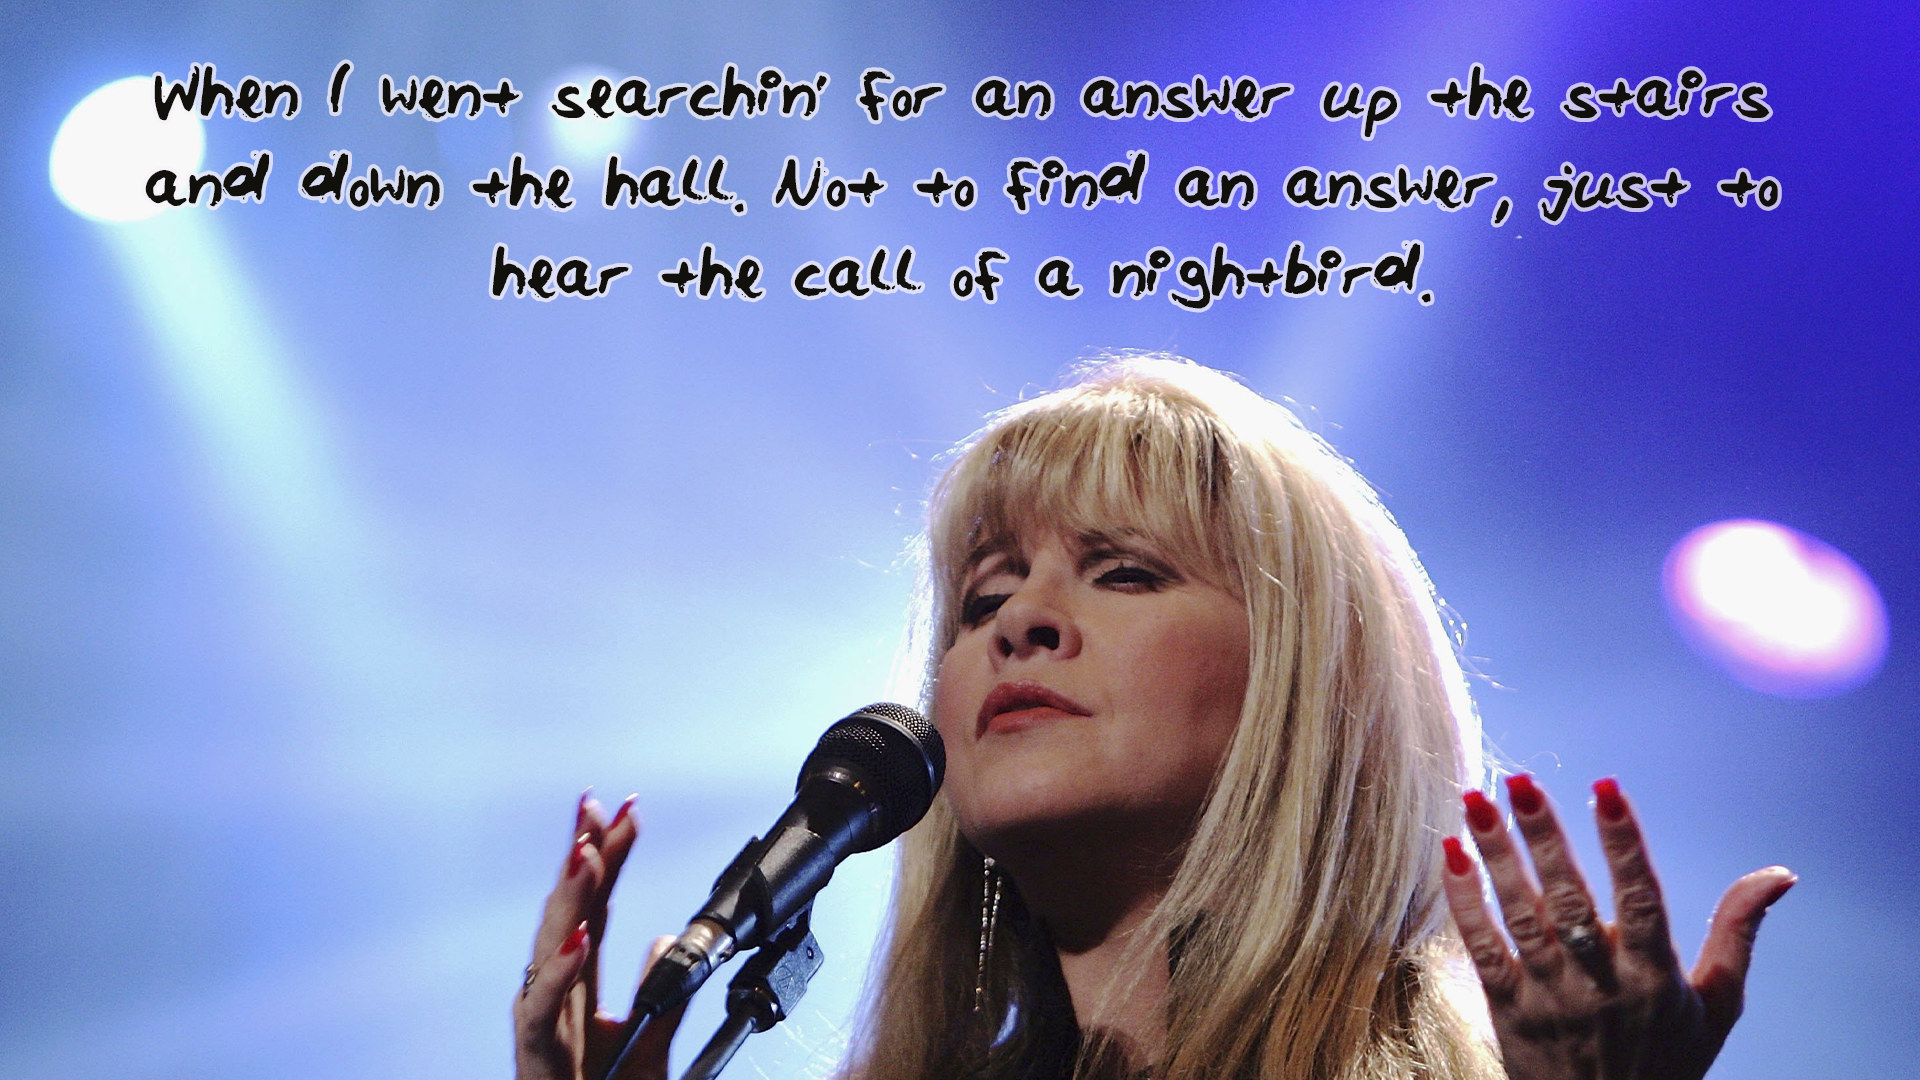 Close up of Stevie Nicks on stage with the lyrics when I went searching for an answer up the stairs and down the hall not to find an answer just to hear the call of a nightbird on top